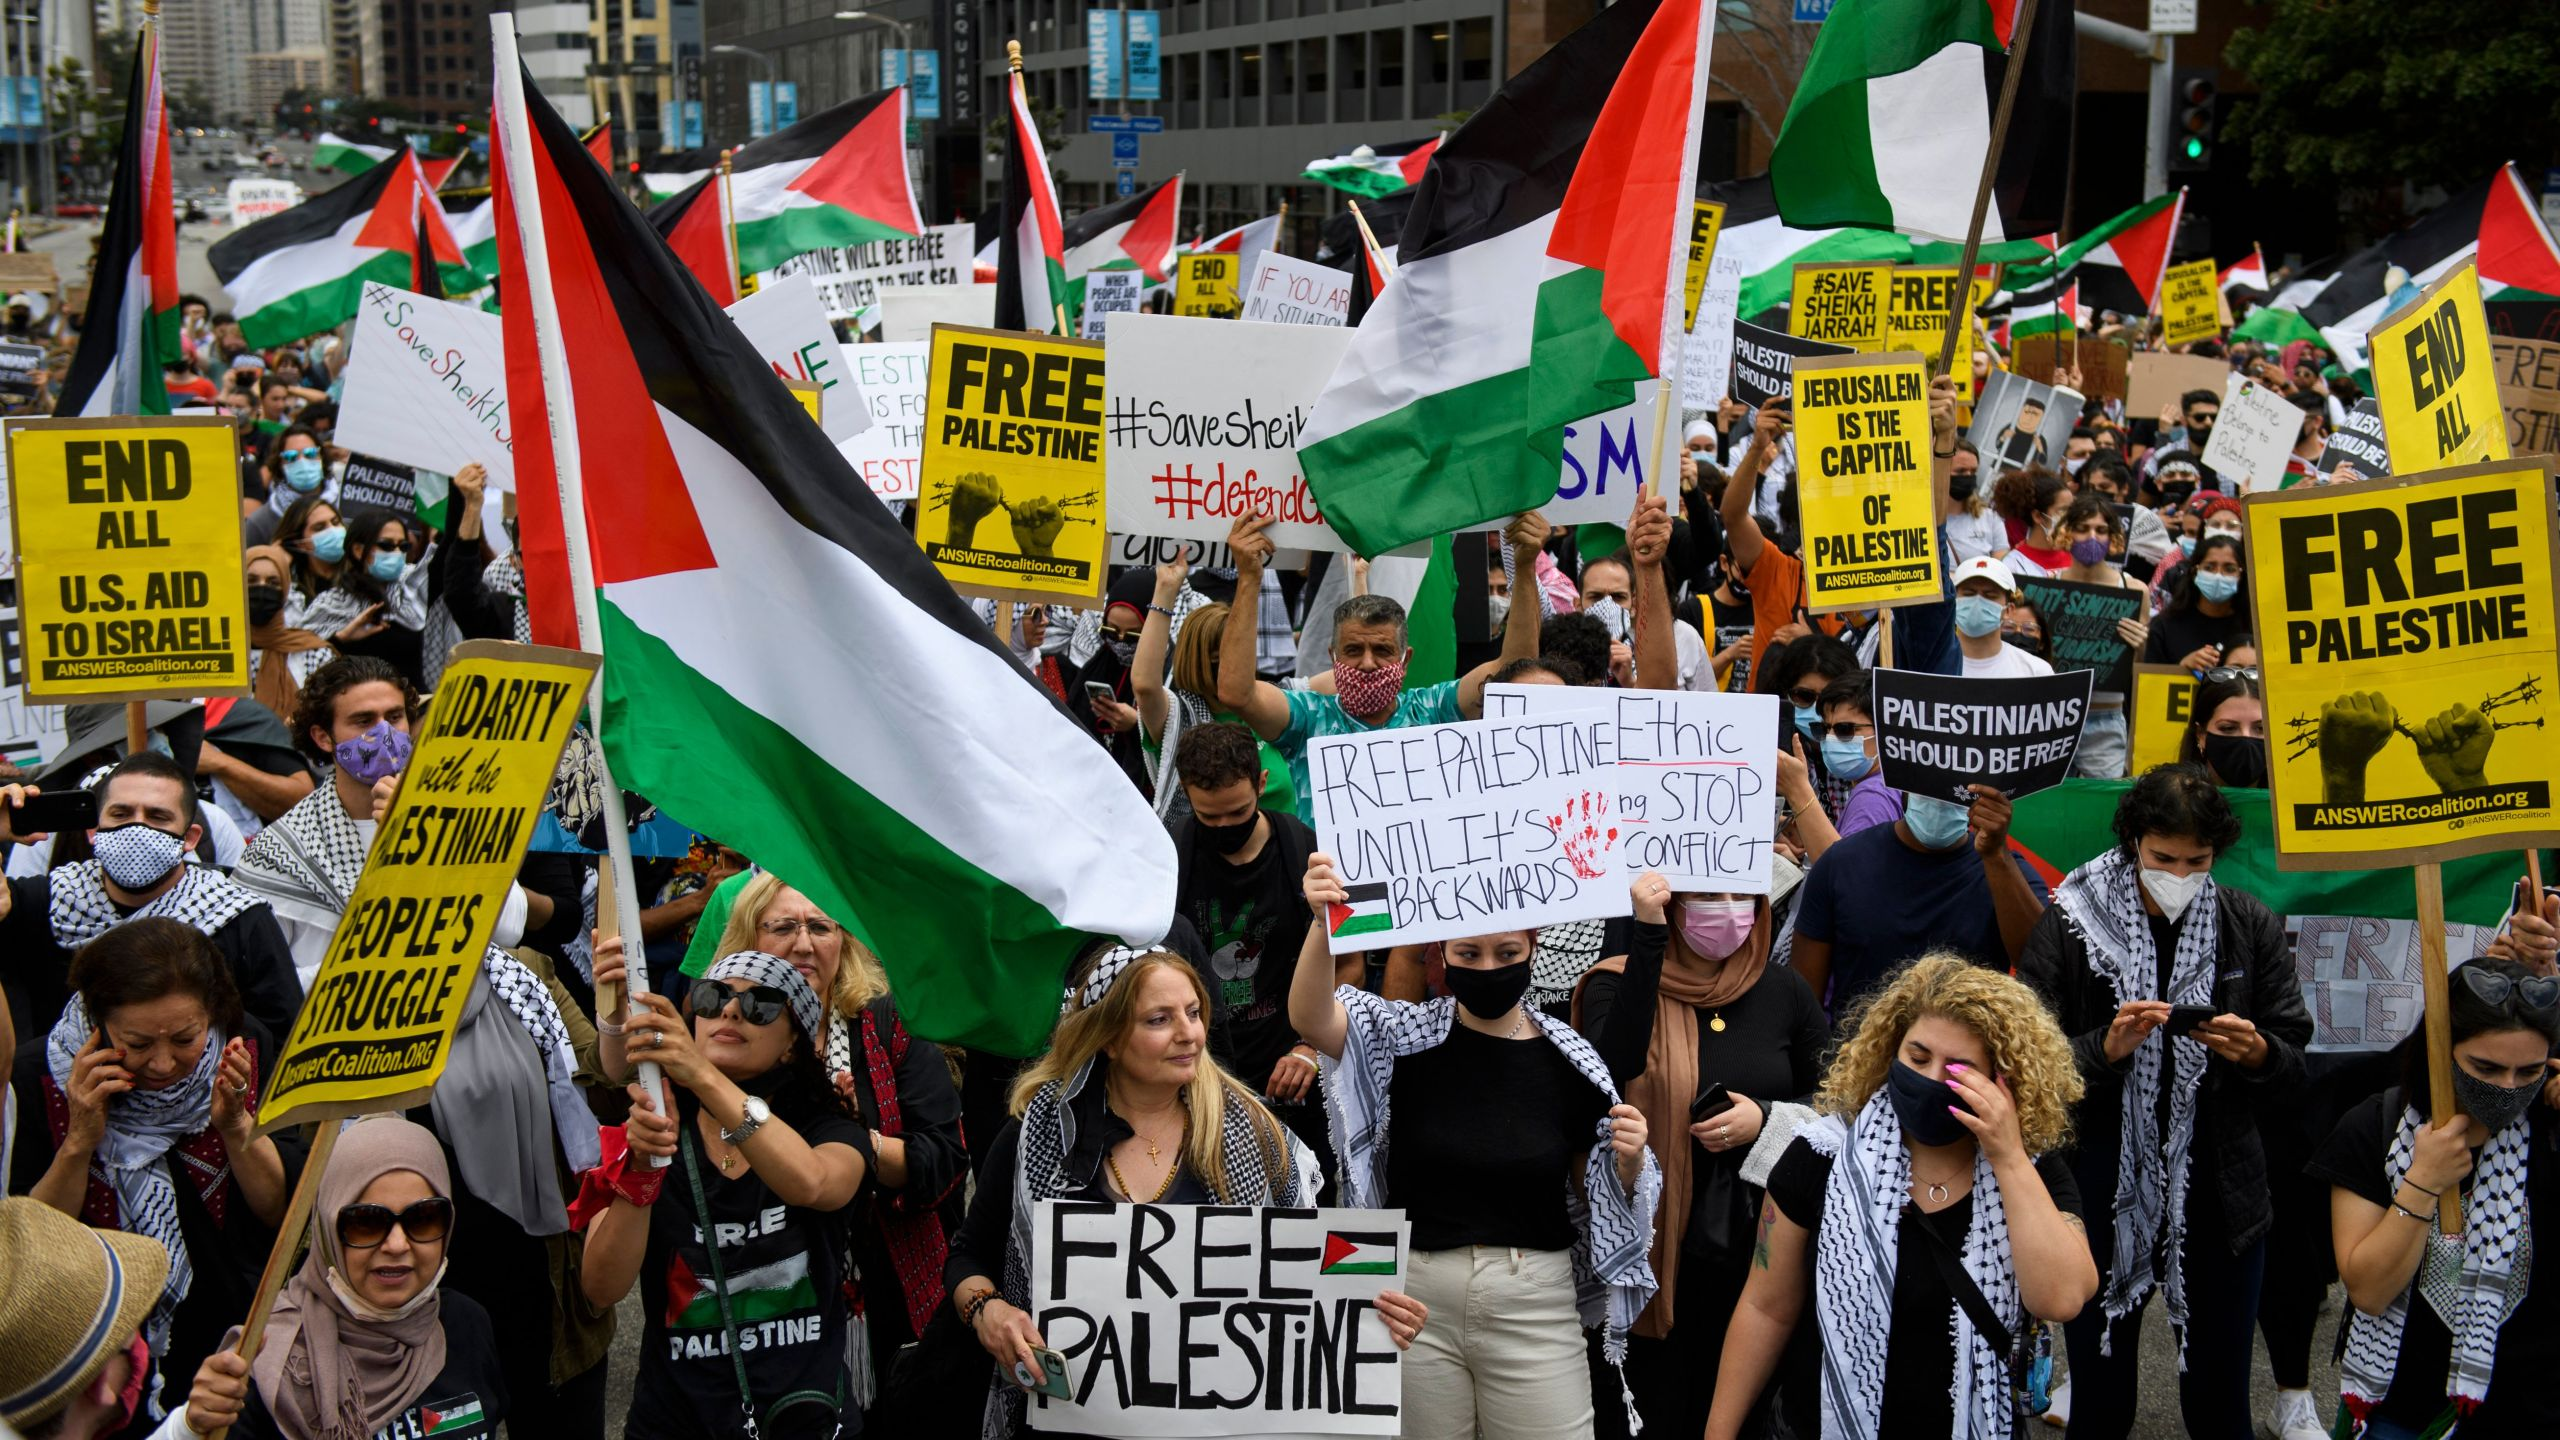 People demonstrate in support of Palestine during the Los Angeles Nakba 73: Resistance Until Liberation rally and protest from the US Federal Building to the Consulate of Israel on May 15, 2021 in Los Angeles. (Patrick T. Fallon/AFP via Getty Images)